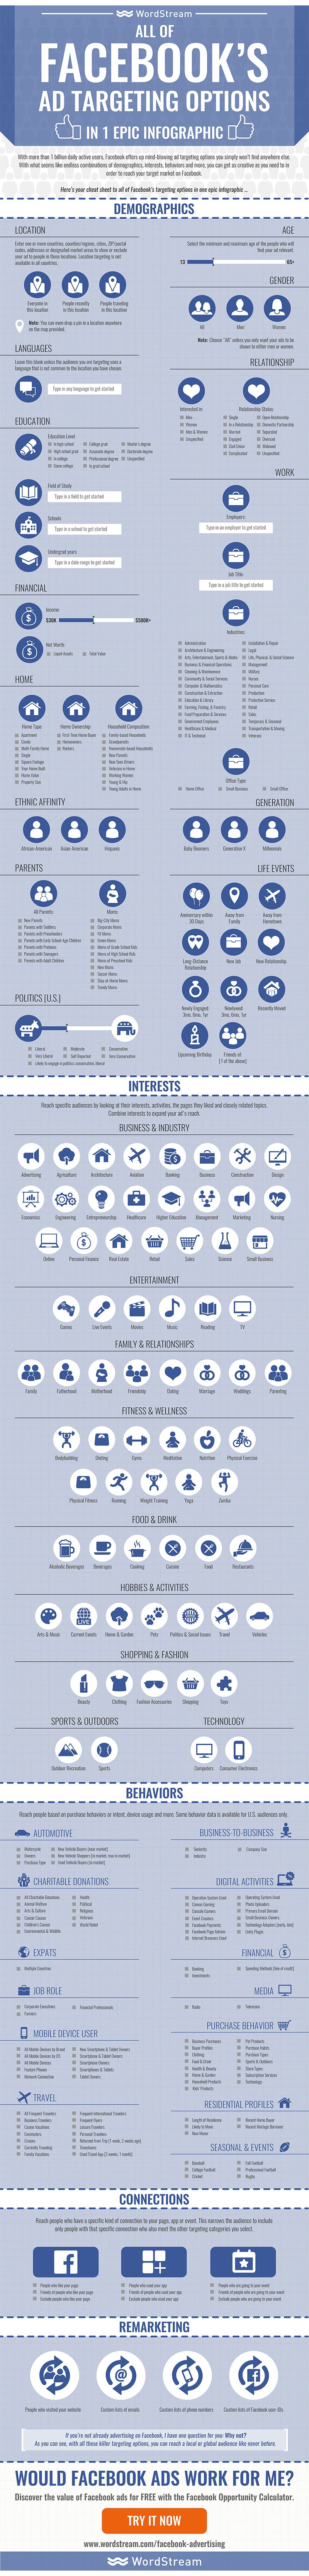 All of Facebook's Ad Targeting Options in One Epic Infographic